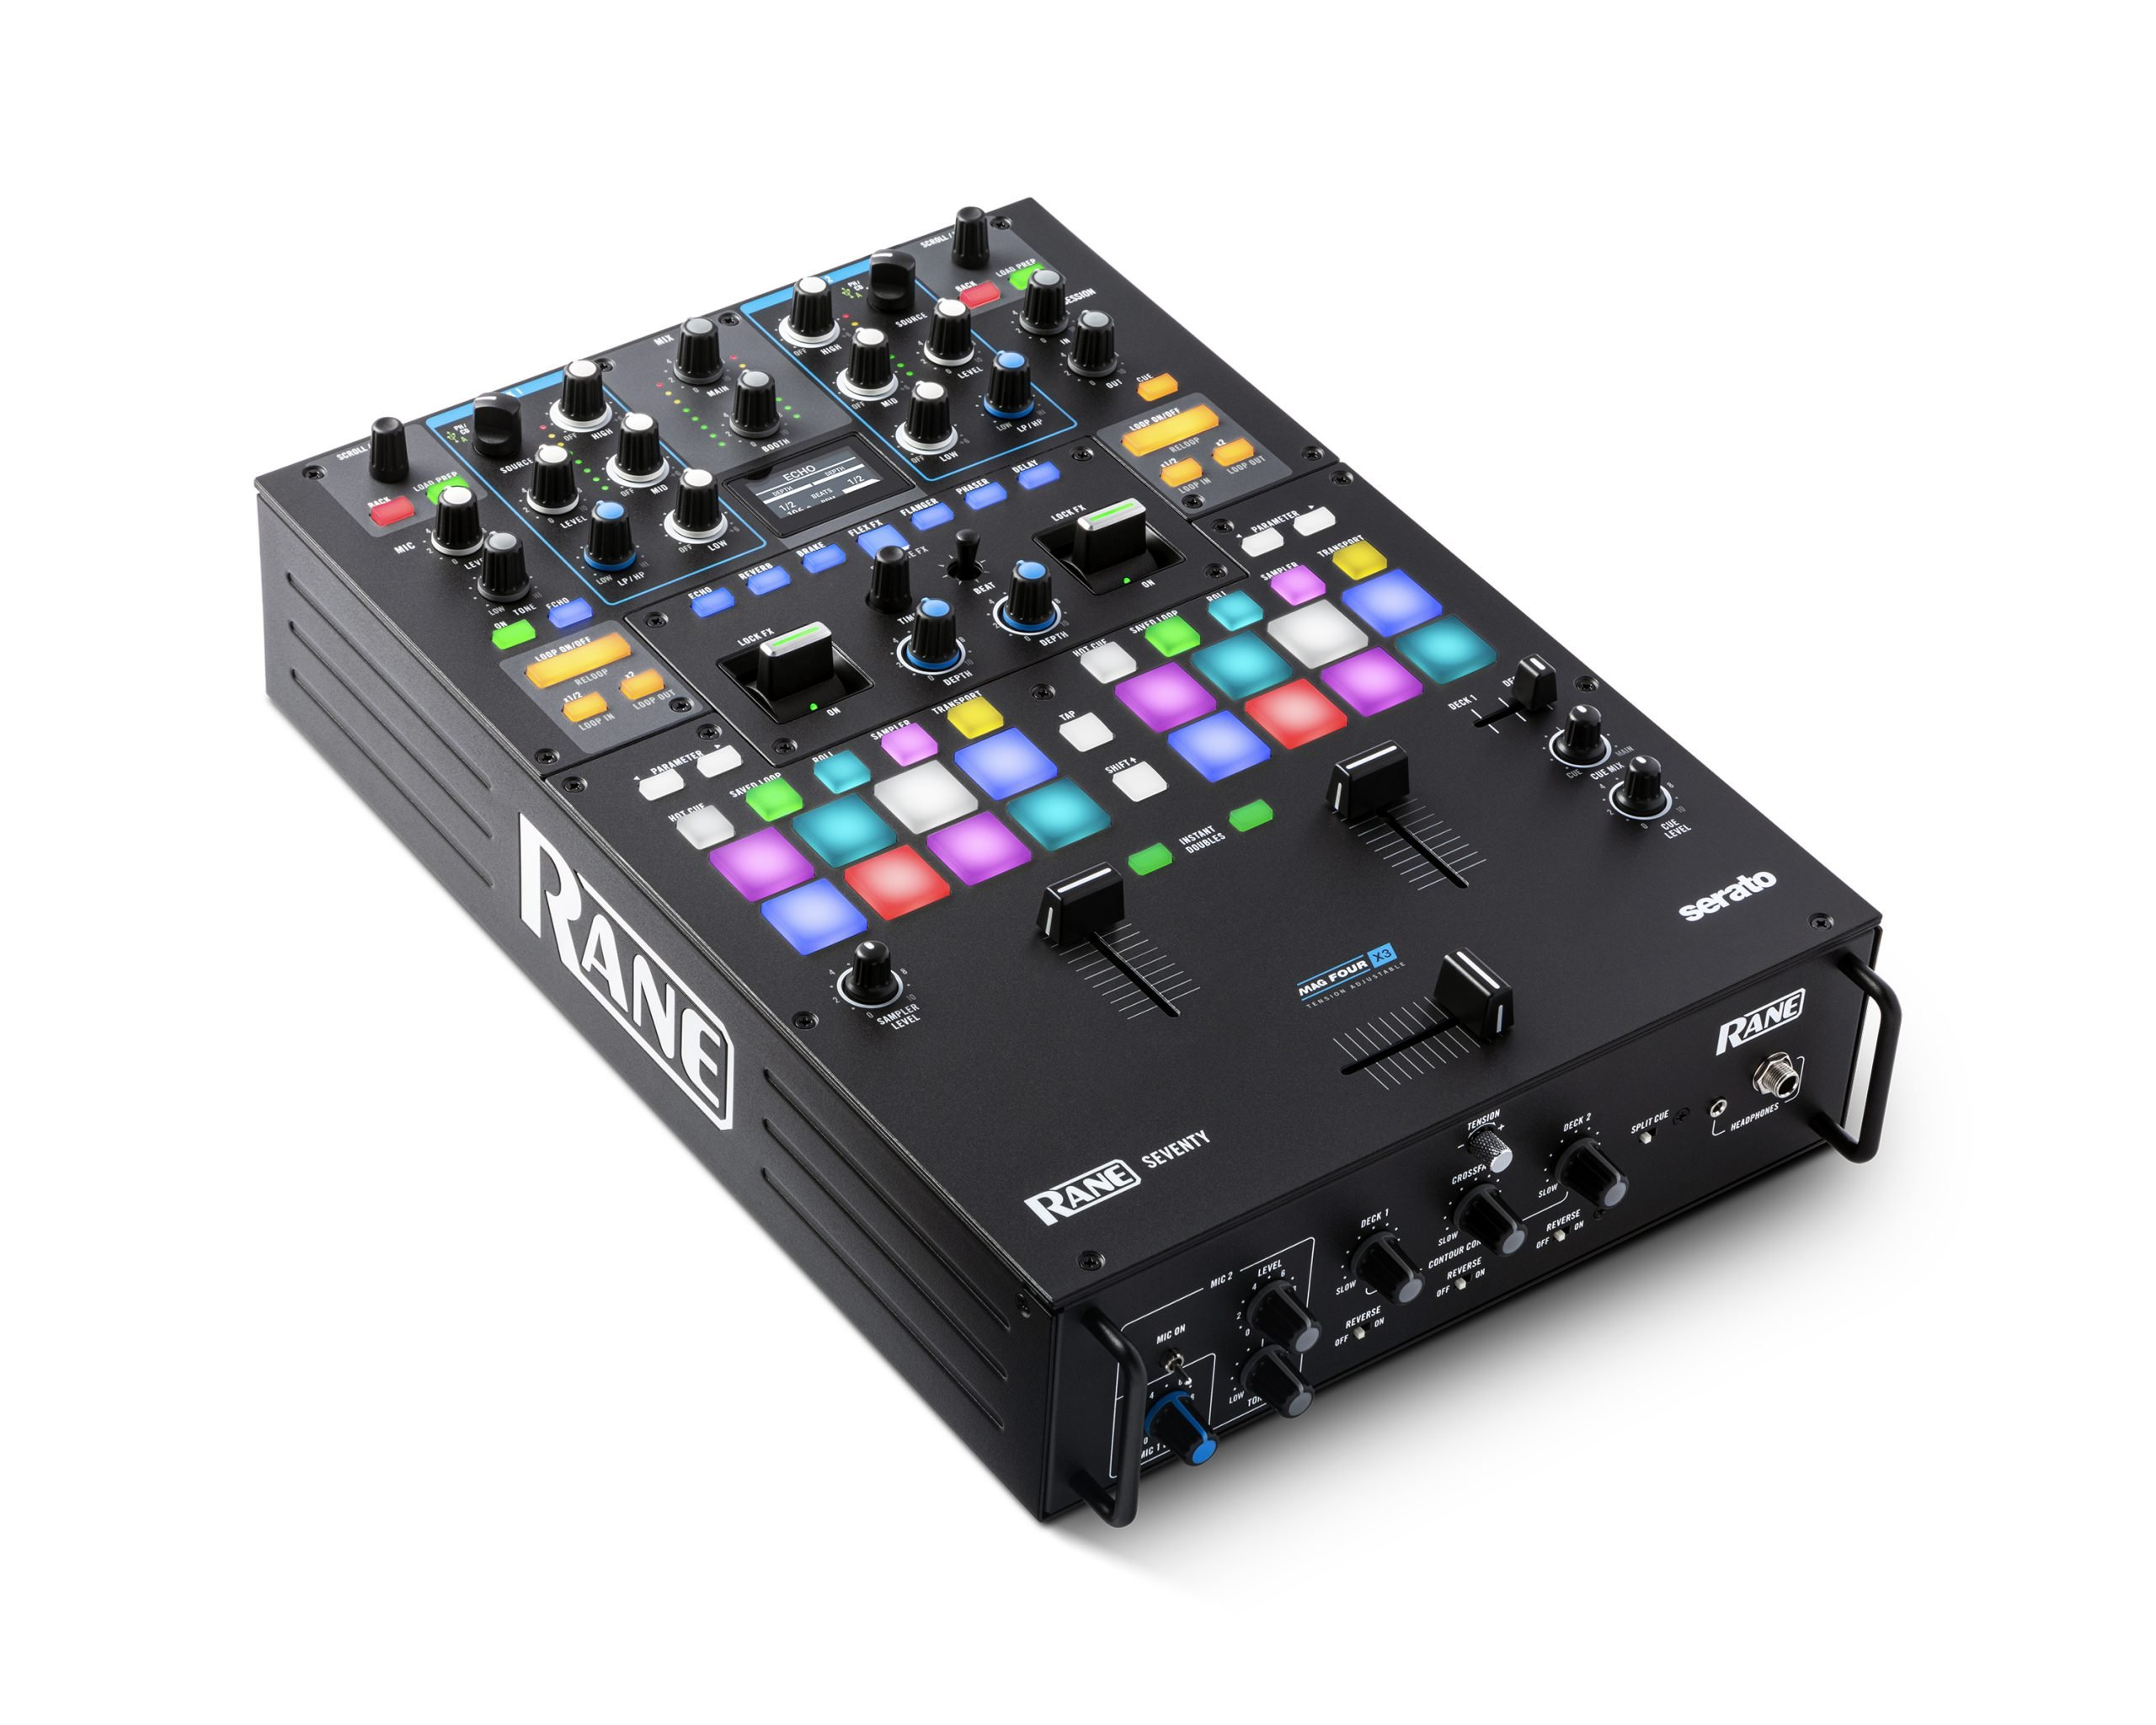 NAMM 2020: Not the Sixty Two sequel, but a Rane Seventy 3